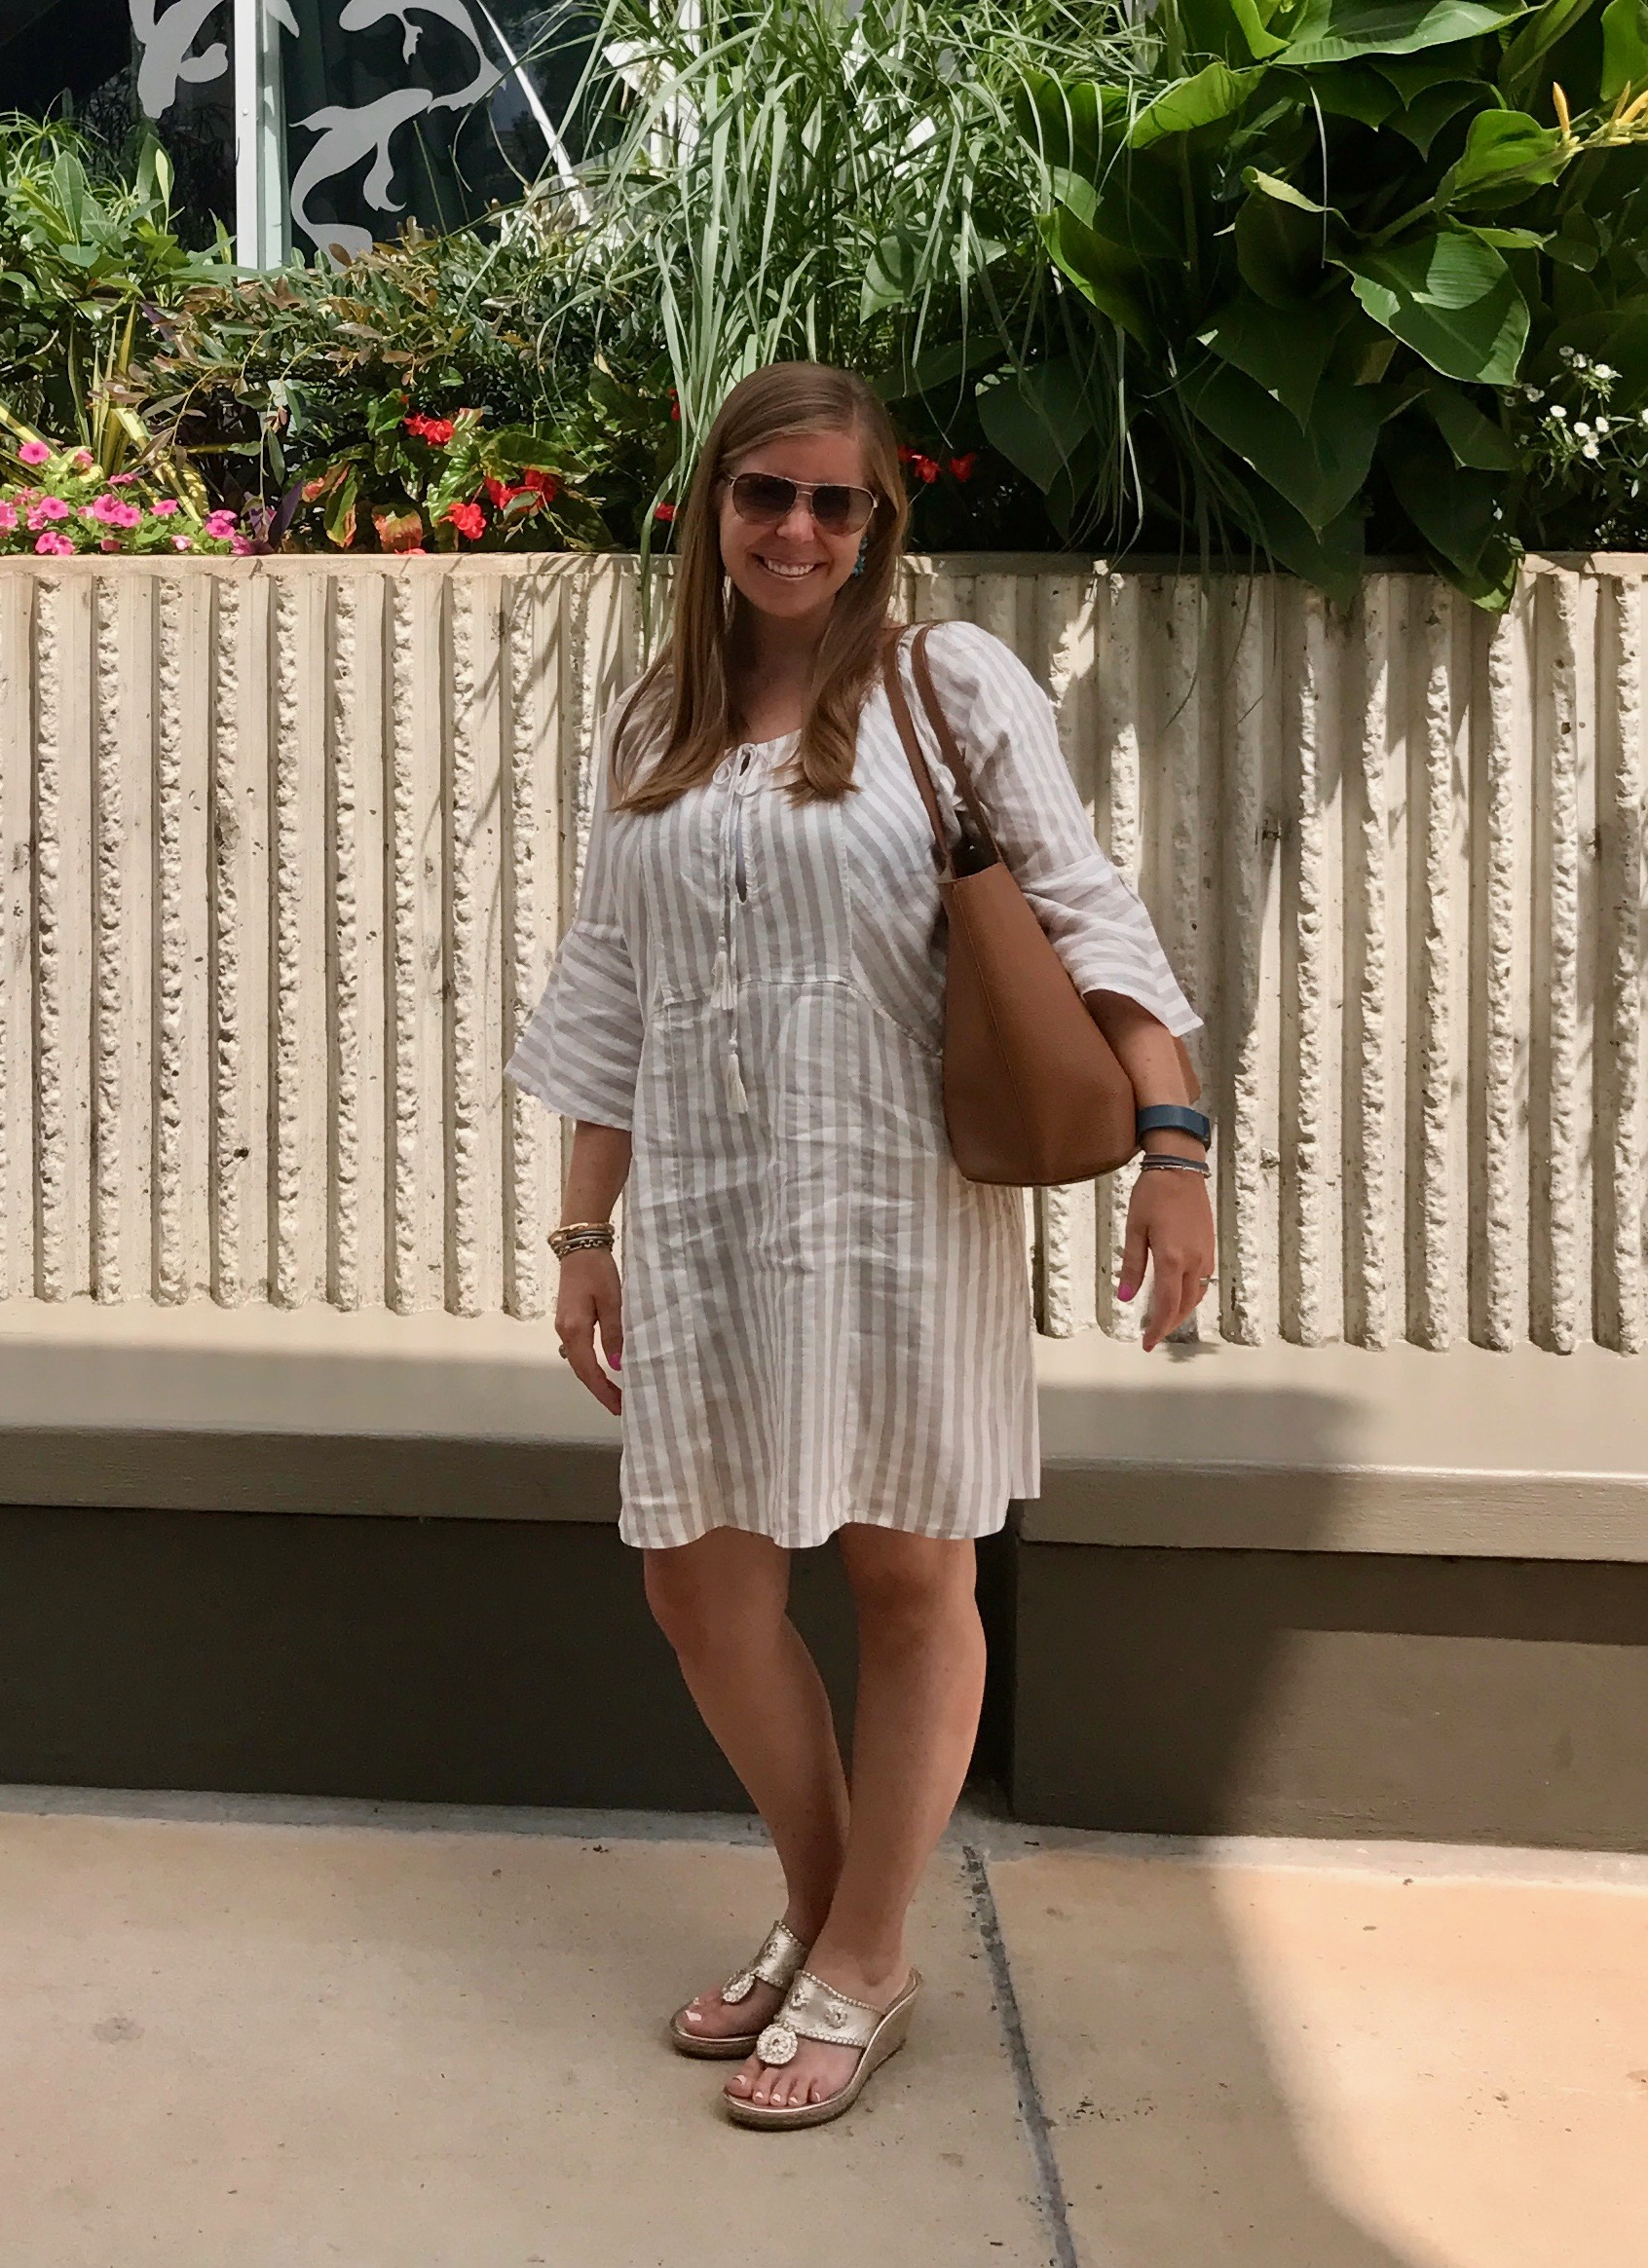 Outfit Details:    Free People Dress   //   Jack Rogers Sandals   //   Tory Burch Bag (sold out)  ,   similar  //   Sugarfix by BaubleBar Earrings